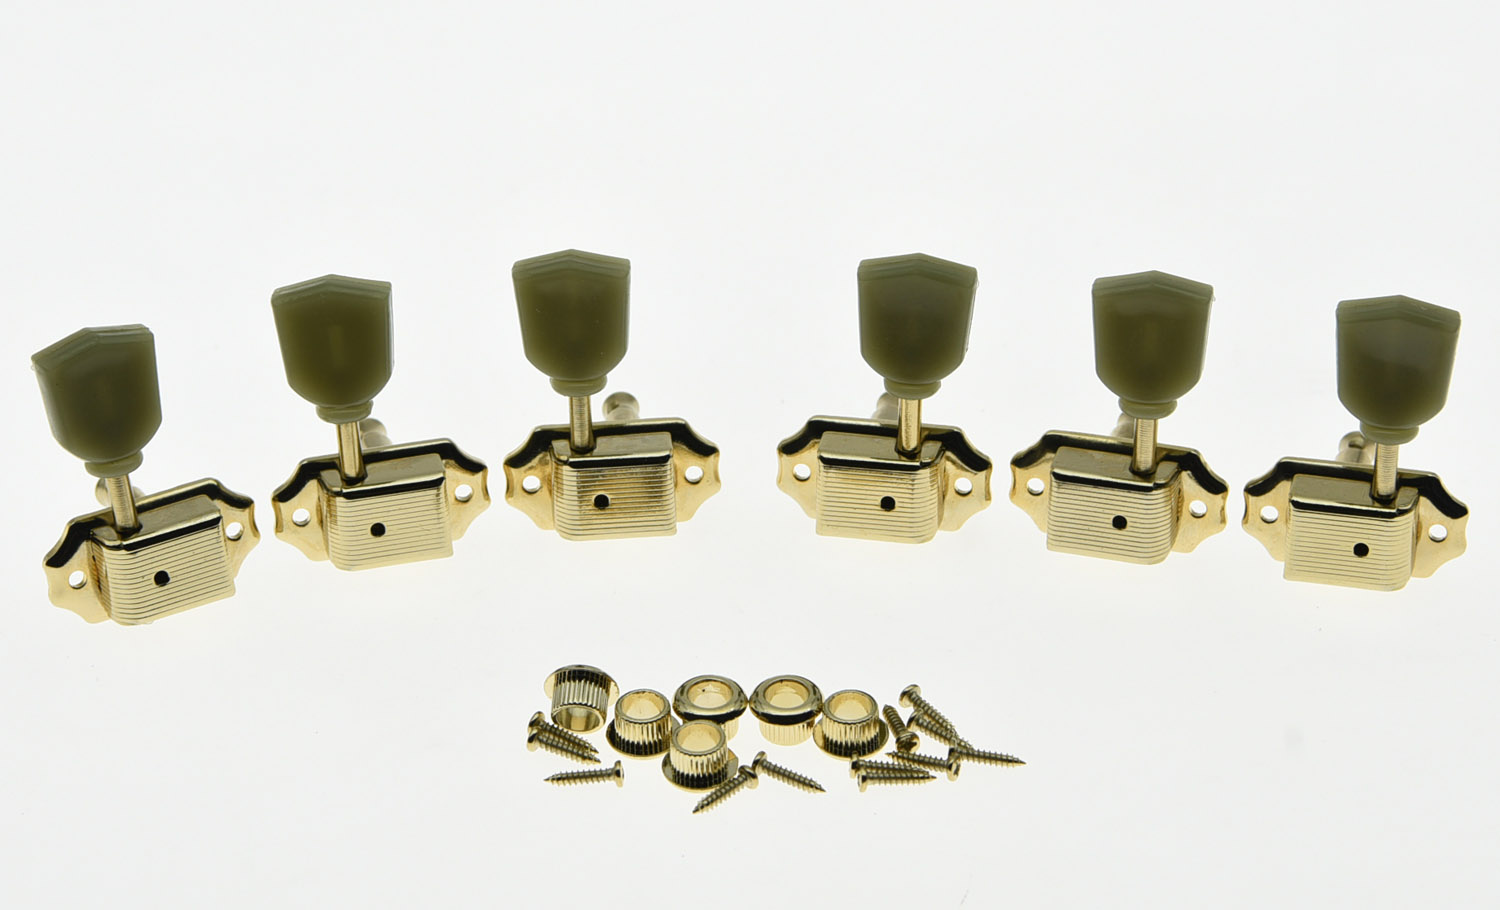 KAISH Gold 3L3R Deluxe Tuning Pegs Keys Guitar Tuners Machine Heads Fits LP kaish chrome deluxe tuning pegs keys lp guitar tuners machine heads 3l3r